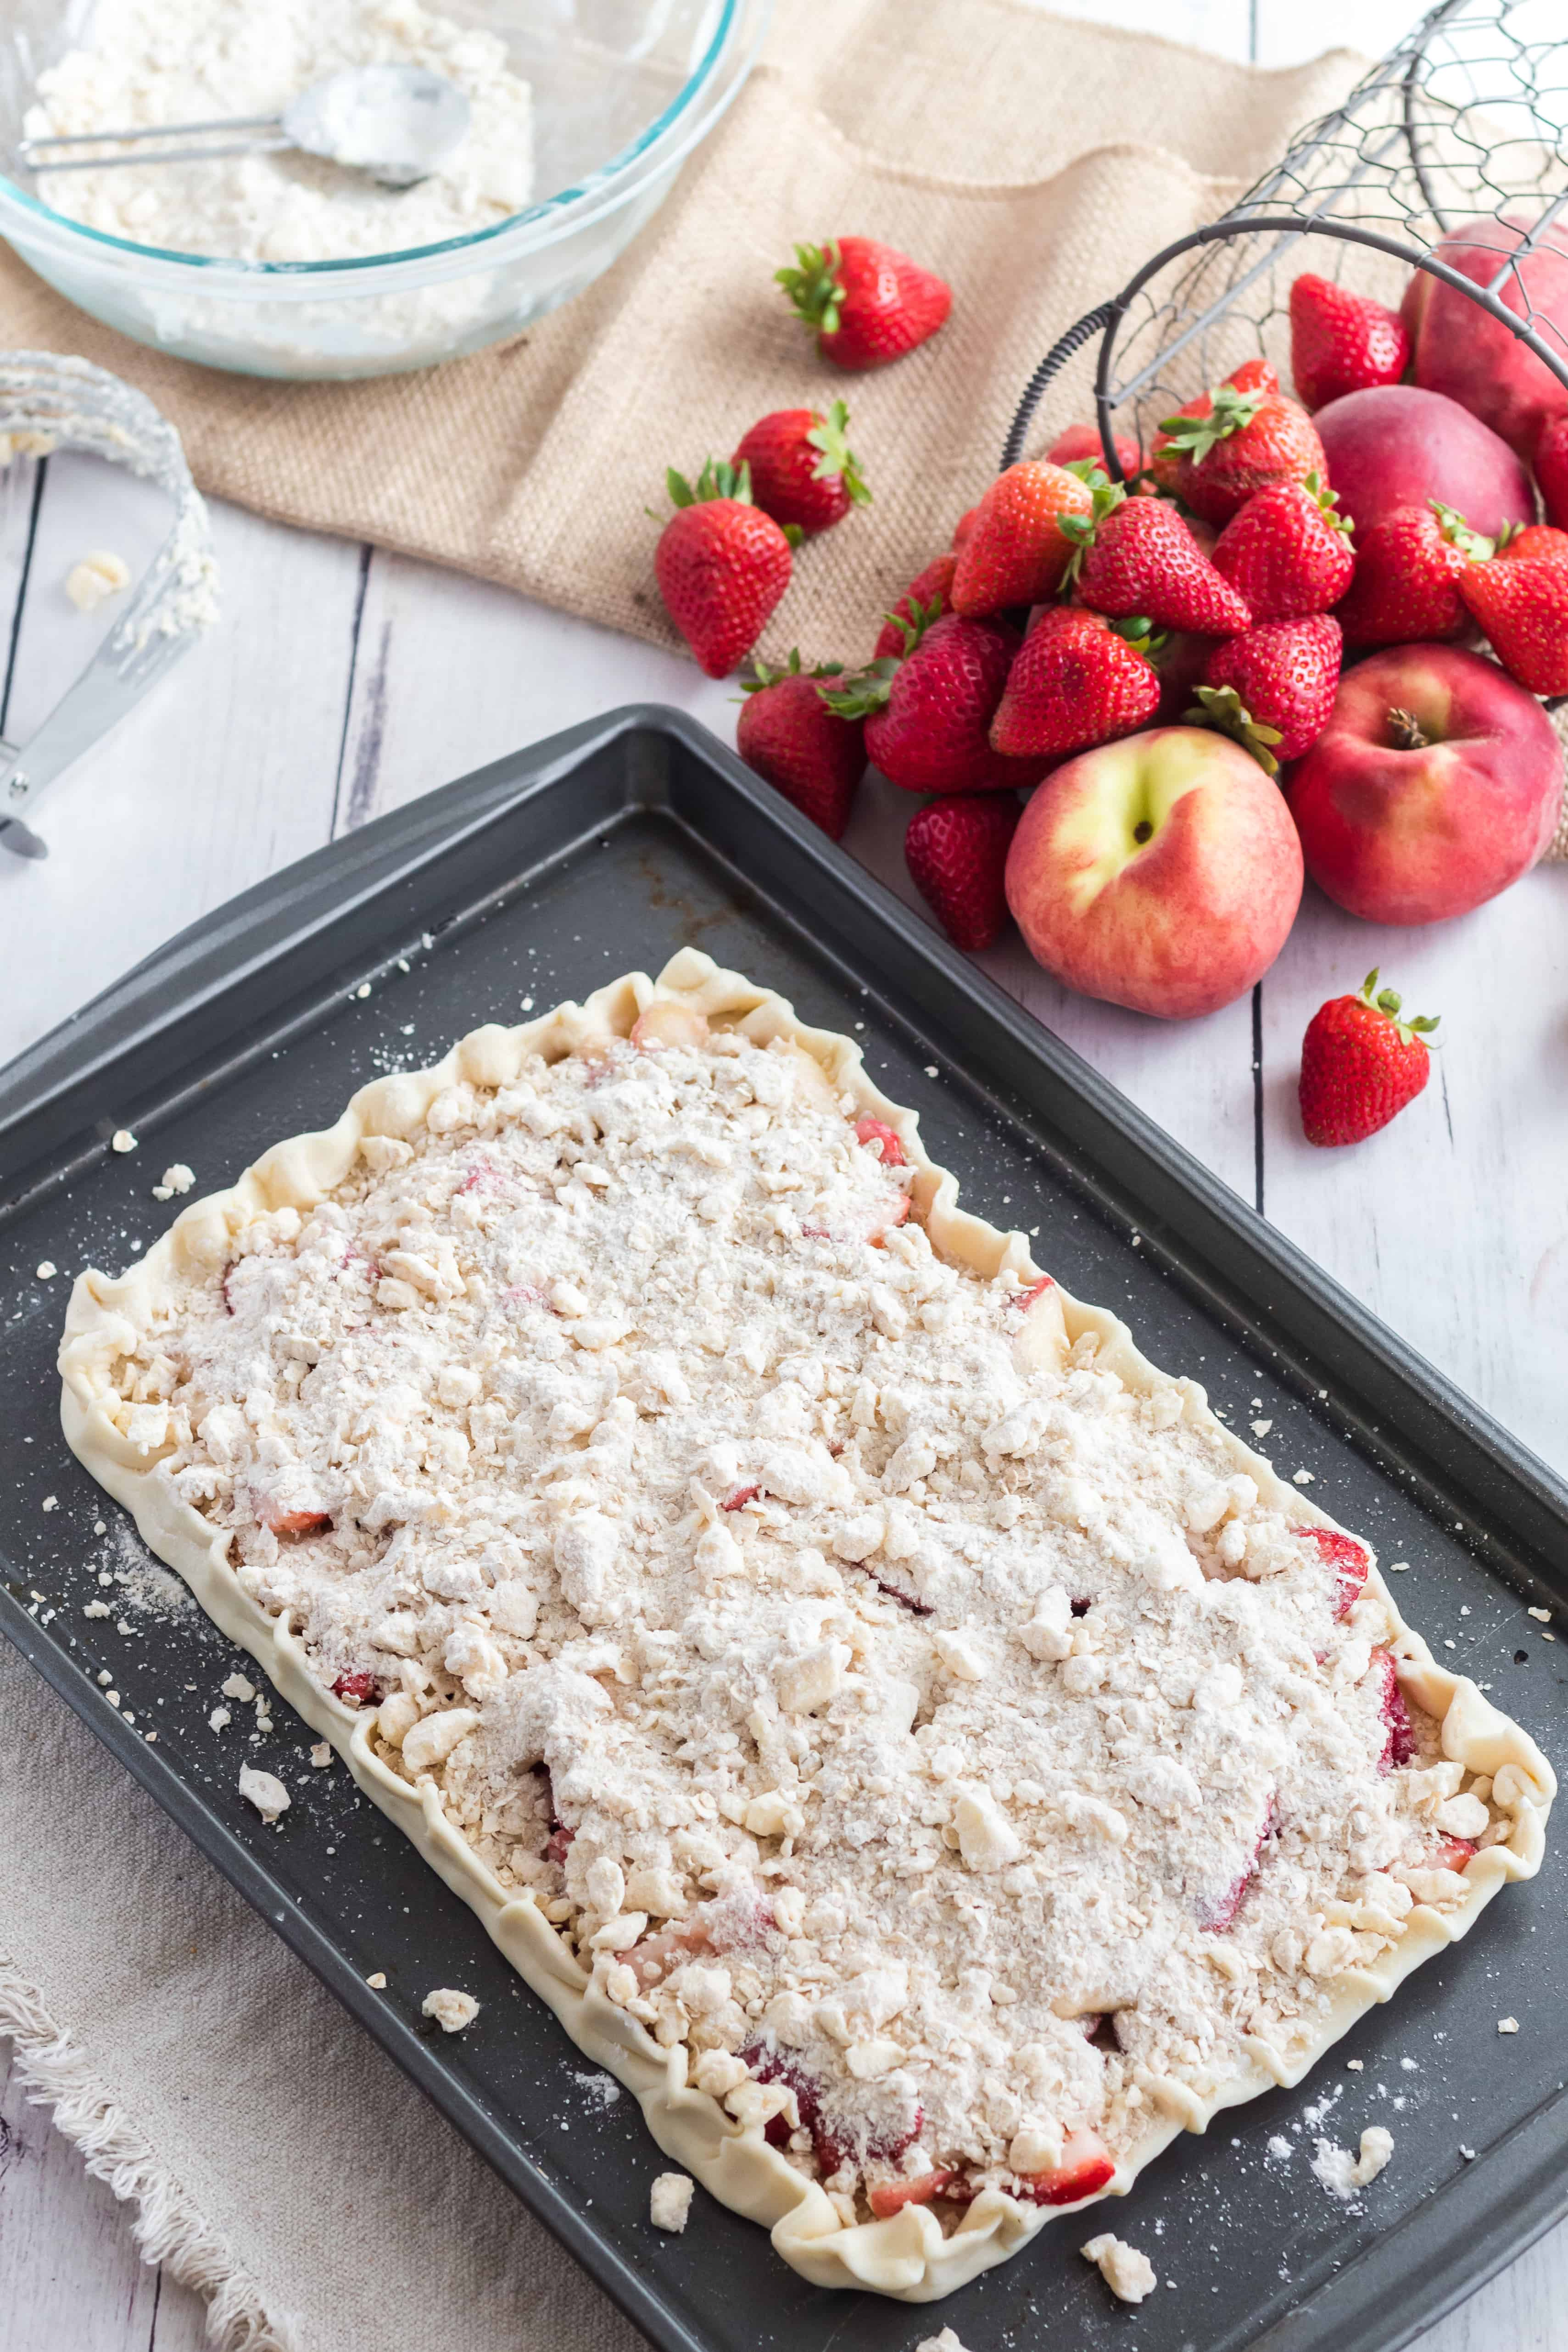 The crumbly mixture should cover the top of the fruit in The best white peach strawberry bars